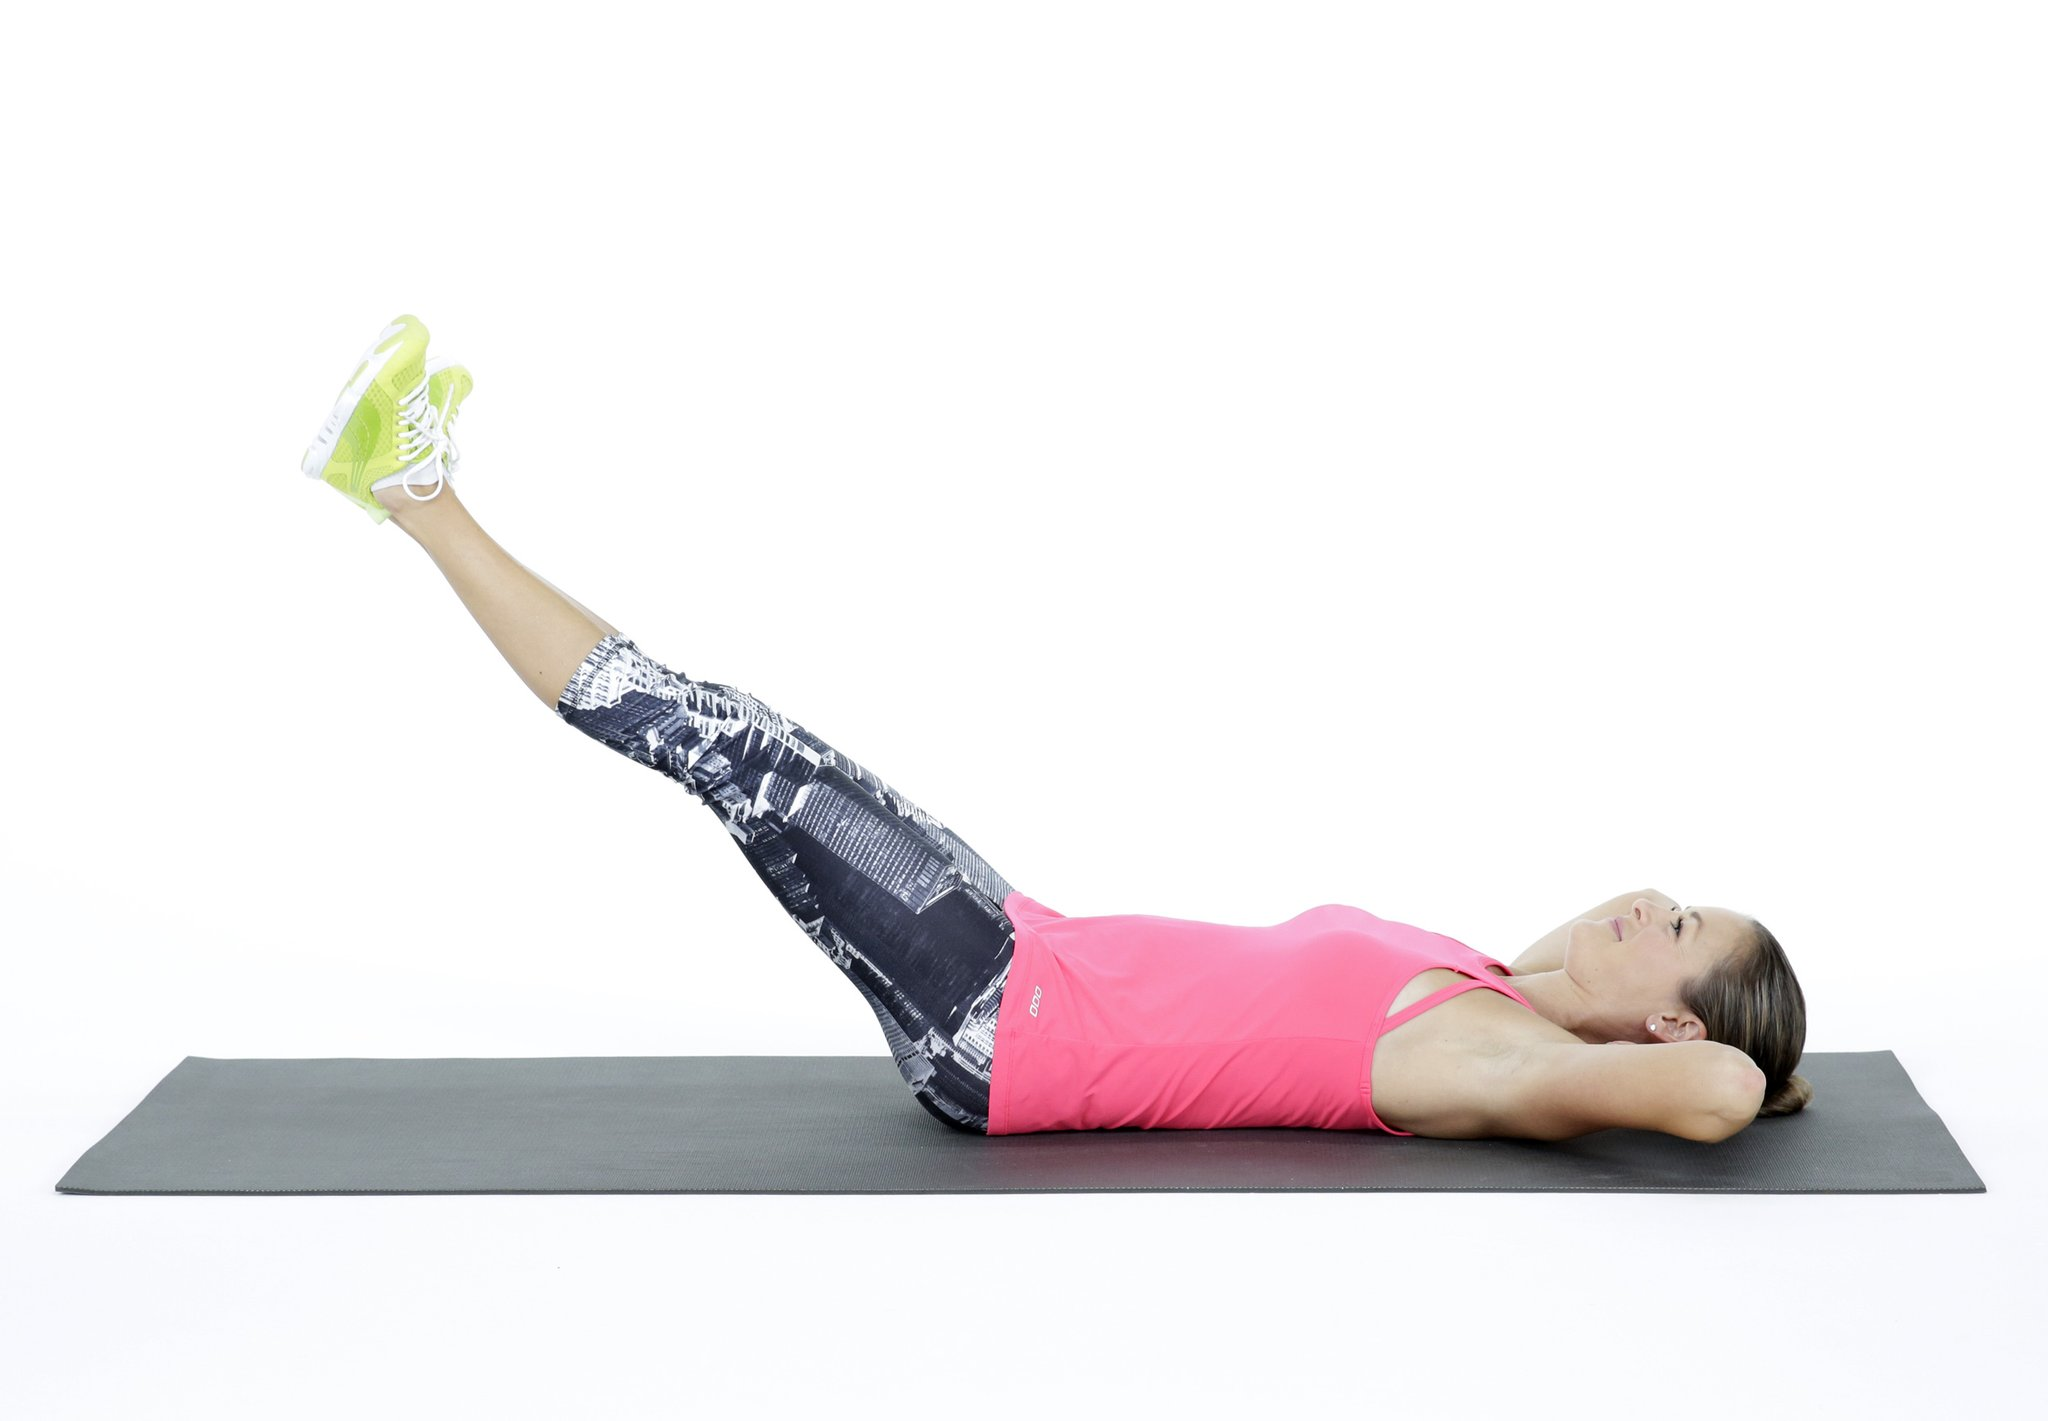 Cardio And Abs Circuit Workout Sweet Strong Arms Legs Double Leg Lifts